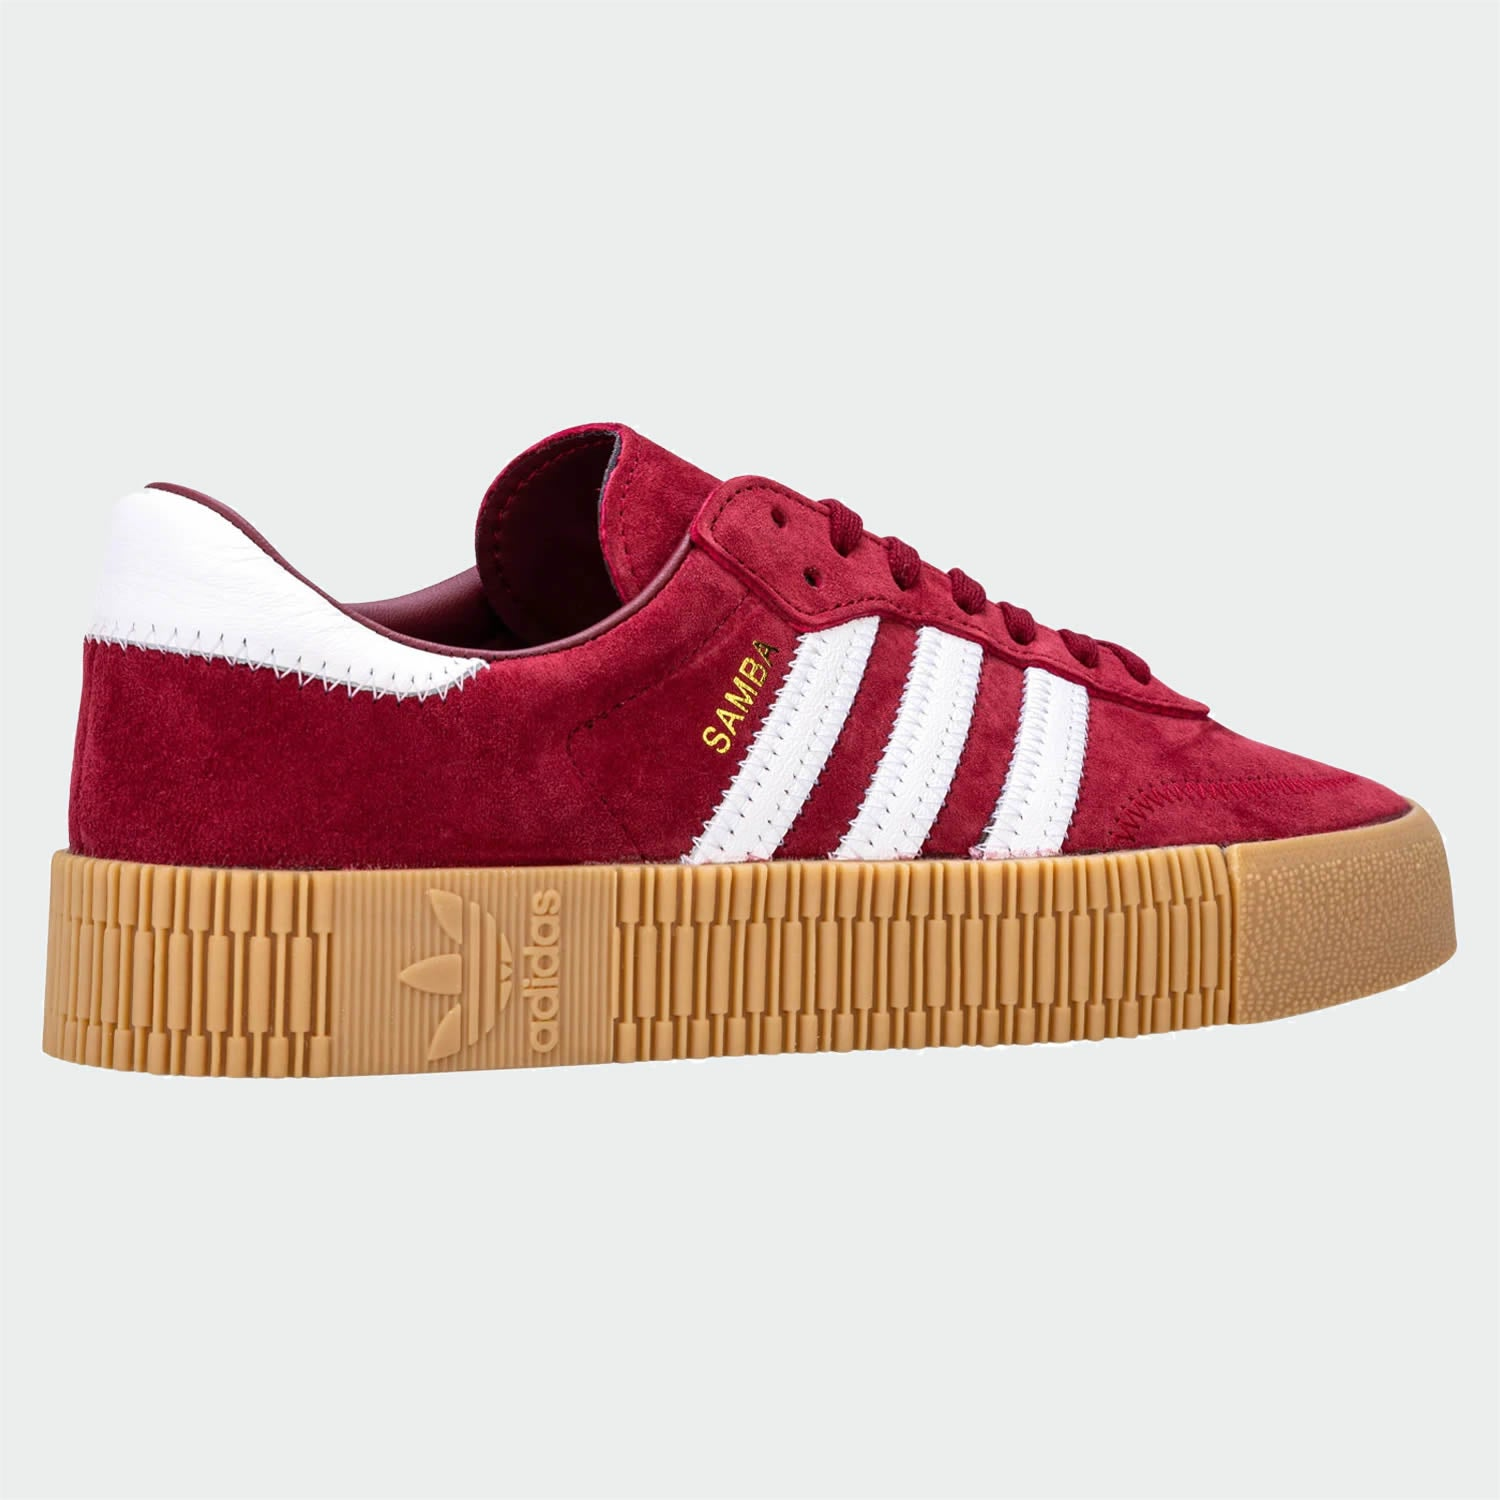 Permanent Bage resterende burgundy adidas trainers size 5 video ...